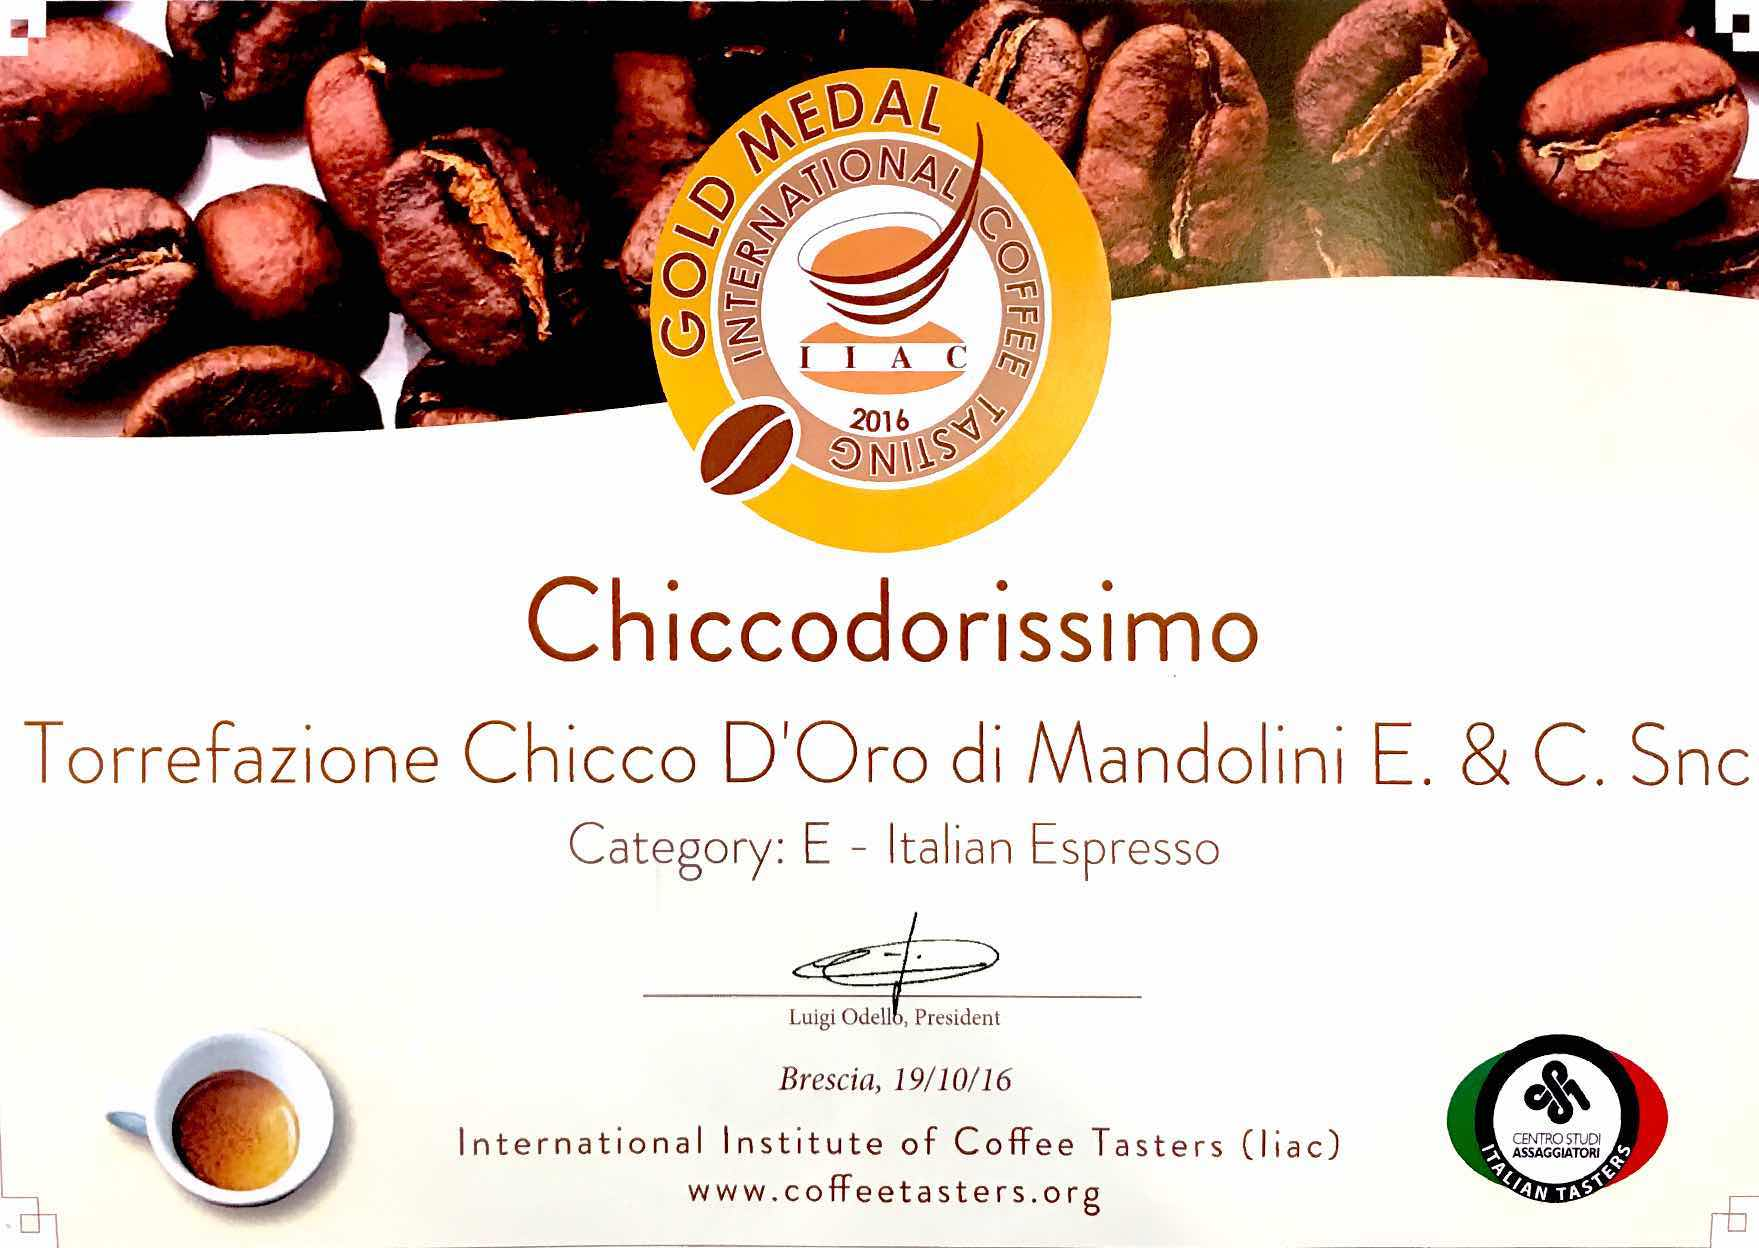 Torrefazione Caffè Chicco D'Oro | Internation Coffee Taster IIAC 2016 - Chiccodorissimo